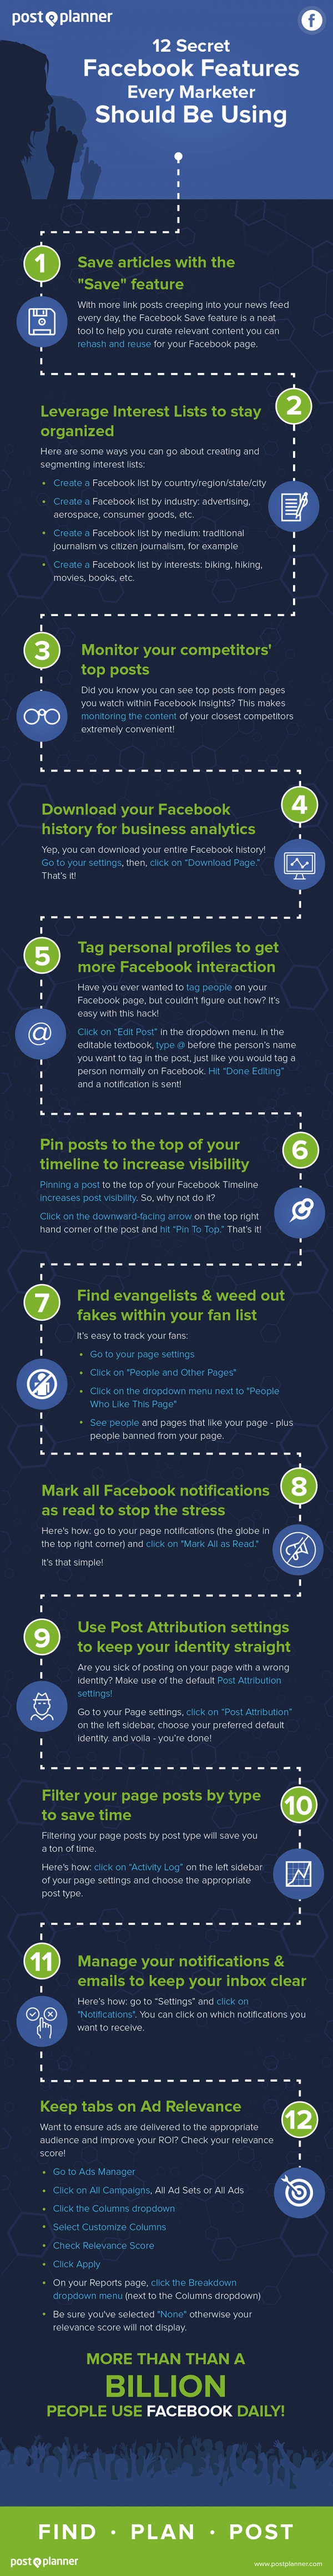 NEW-12_Secret_Facebook_Features_Every_Marketer_Should_Be_Using_2016-1